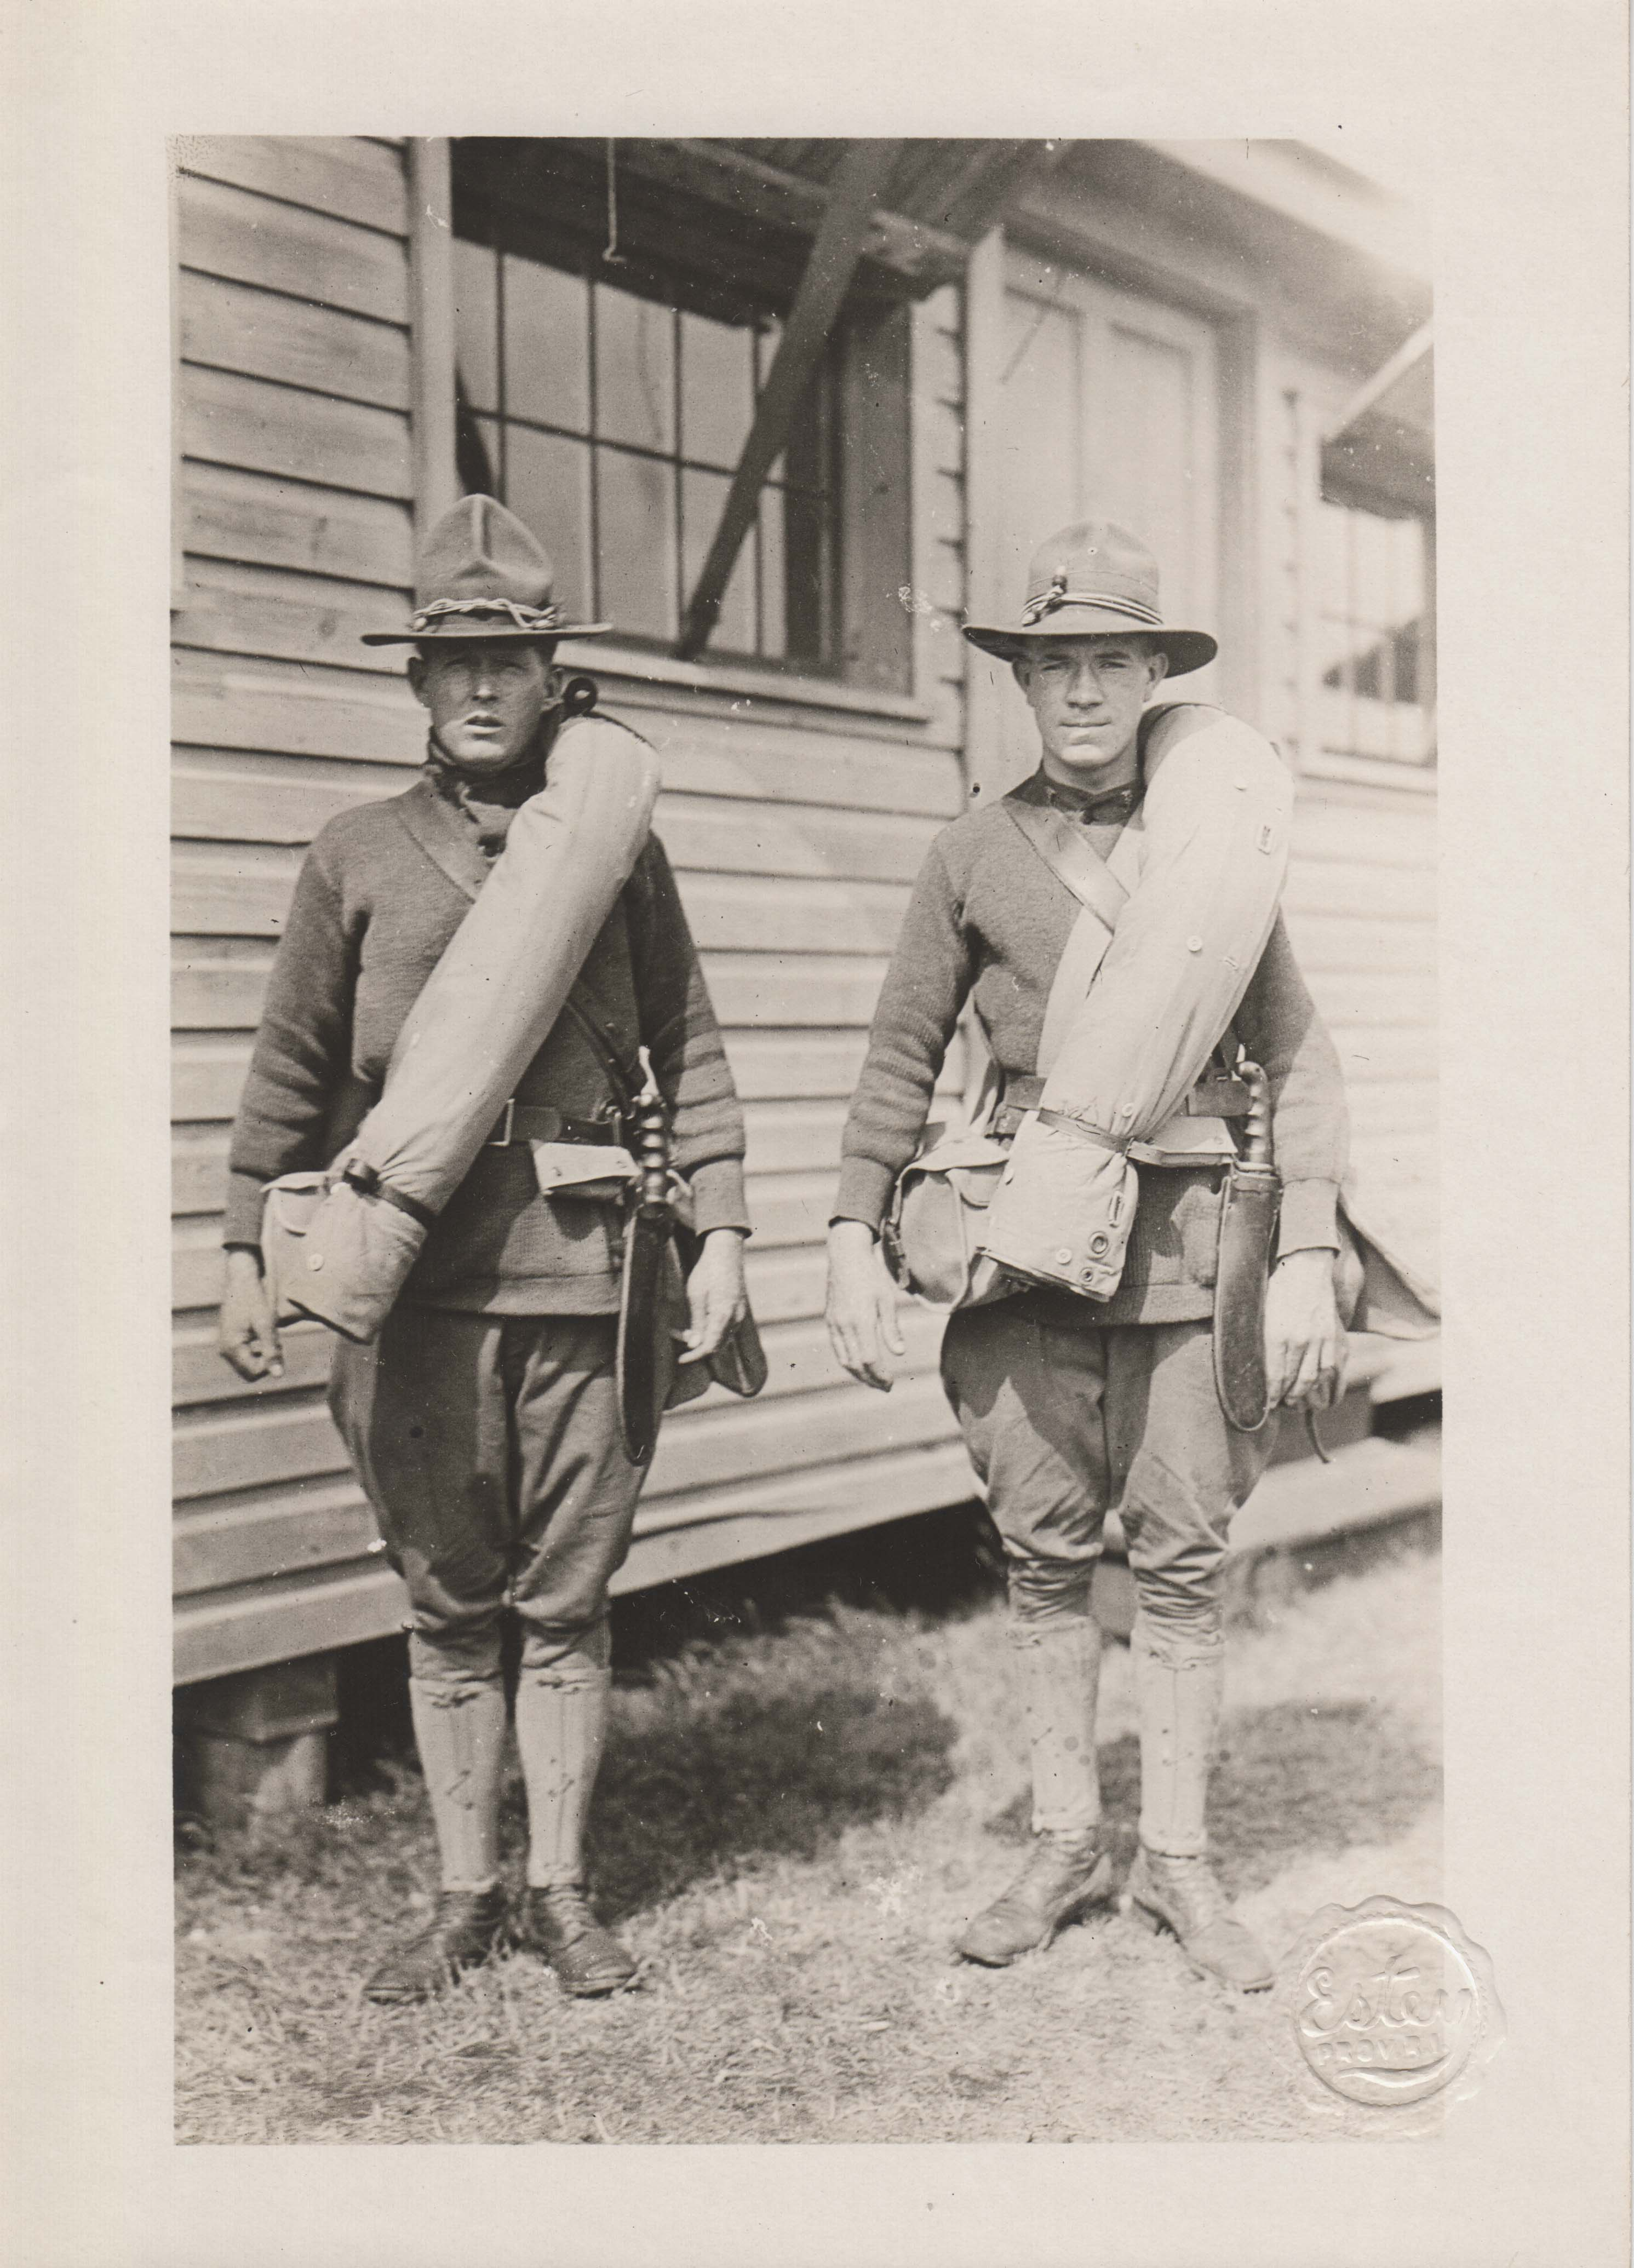 0187 Two rangers with satchels